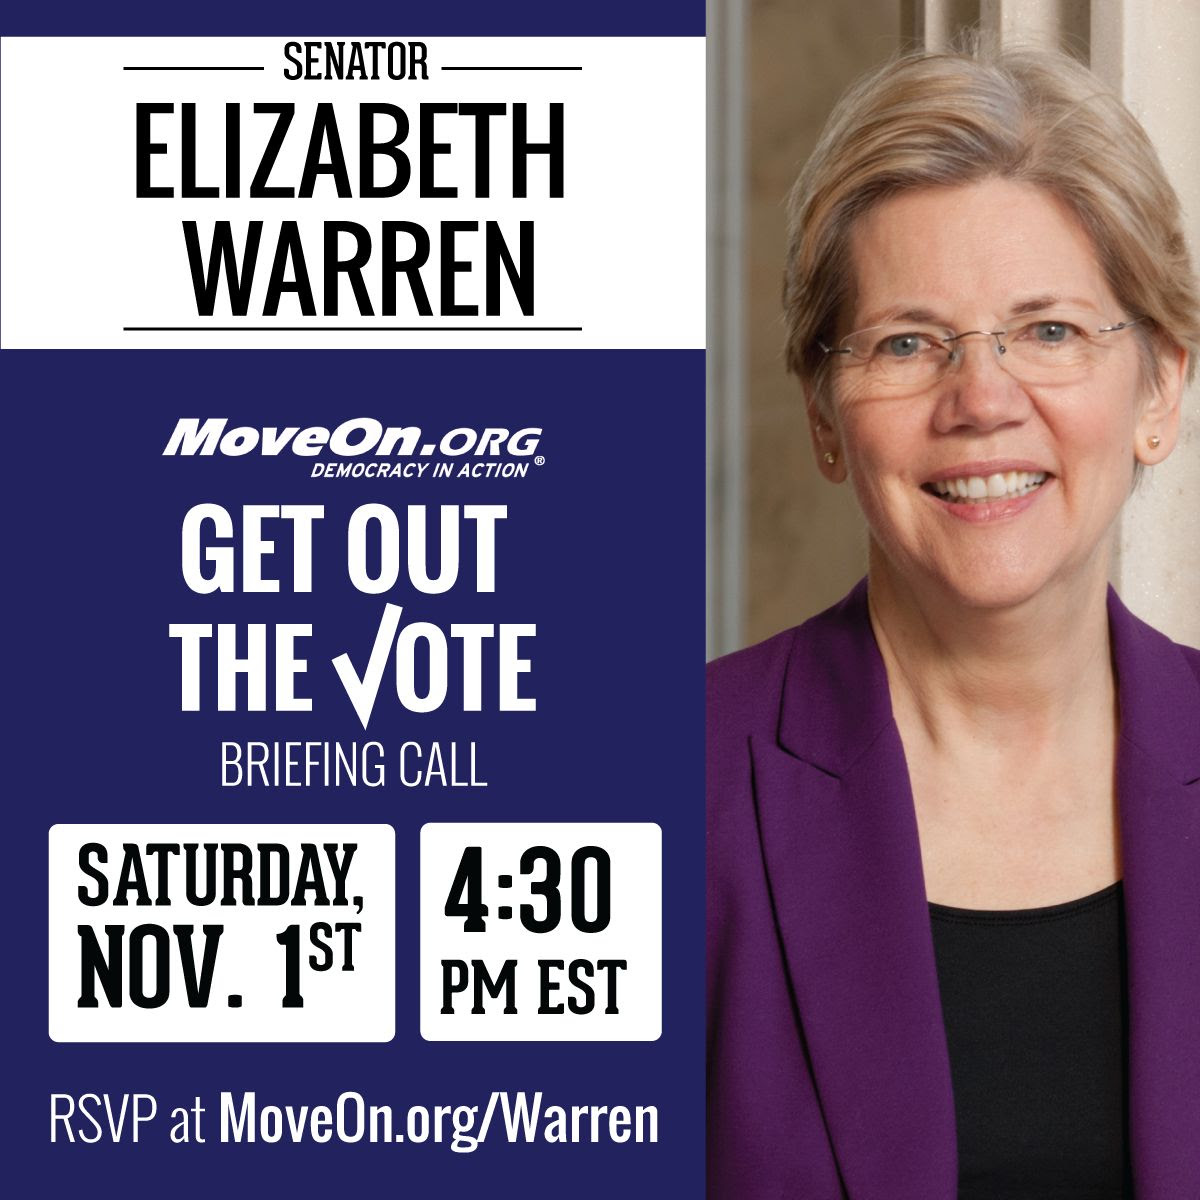 Click here to RSVP for GOTV call with Elizabeth Warren